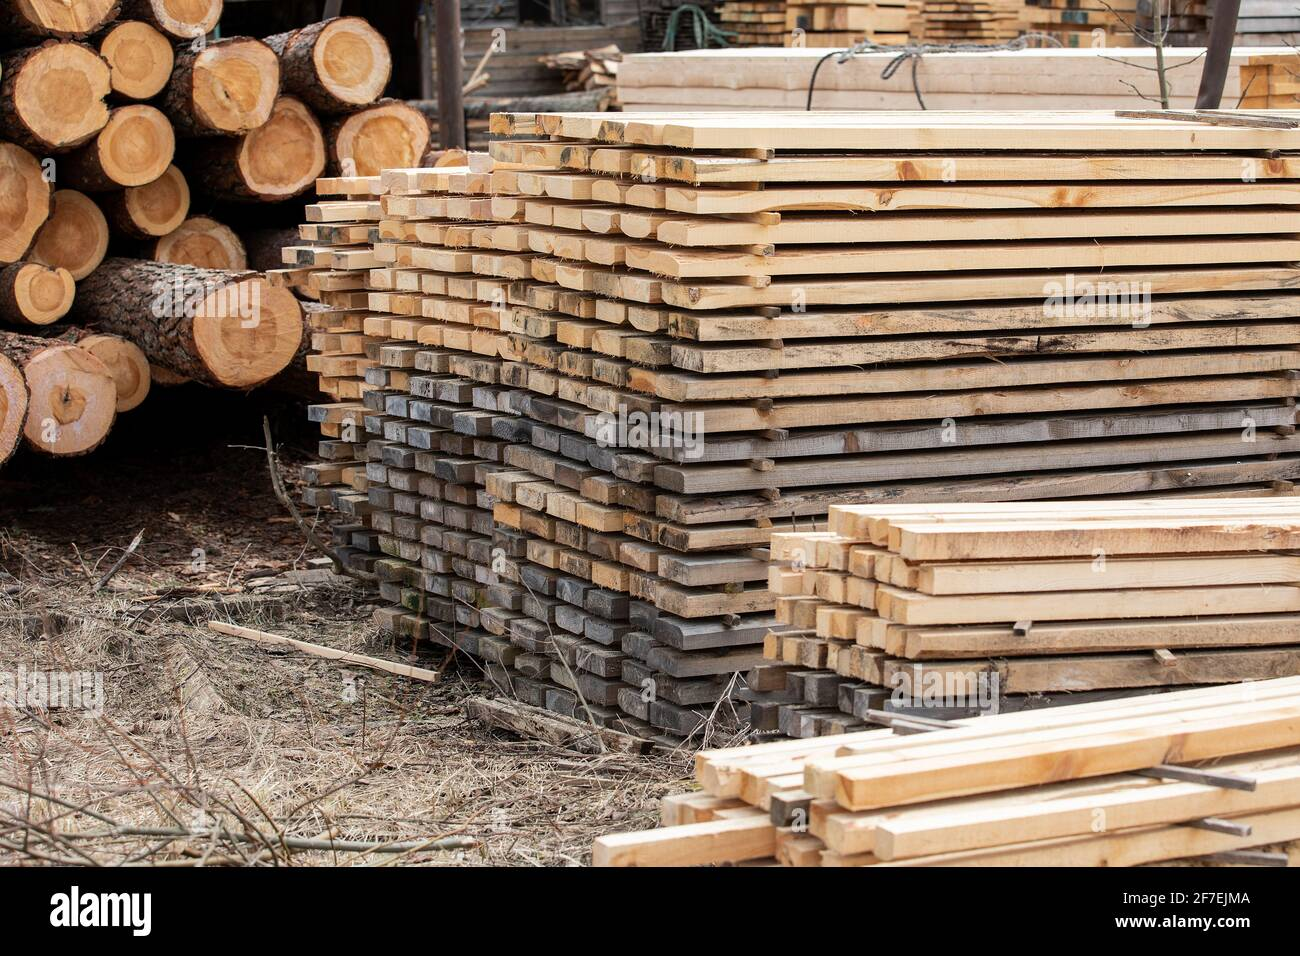 Sawn and stacked boards. Timber production, transportation and delivery. Factory and Industry. Stock Photo